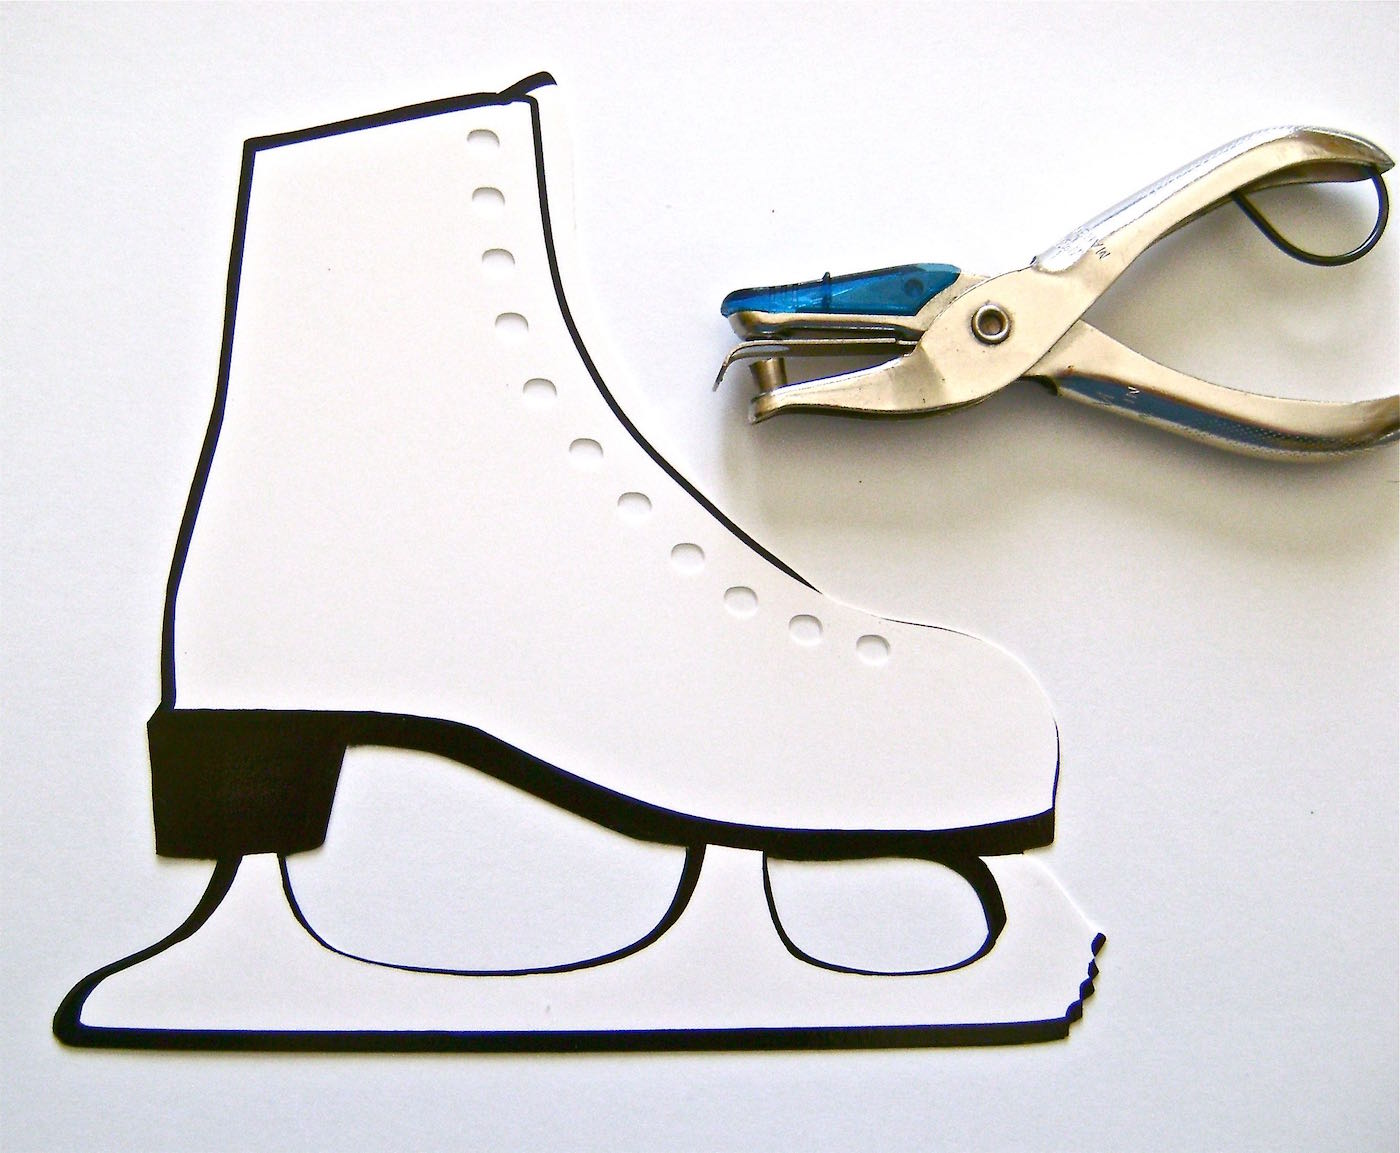 """step 1 -  THE SKATE   Download and print out the skate image on glossy photo paper or card stock.  Glue the paper to a sheet of plain card stock, which will give the skate more support. Position the glue close to cut lines so glue will remain after the skate has been cut out. When the glue is dry, use a craft knife or scissors to cut out the skate. Punch 11 holes in the skate ¼"""" apart as shown."""